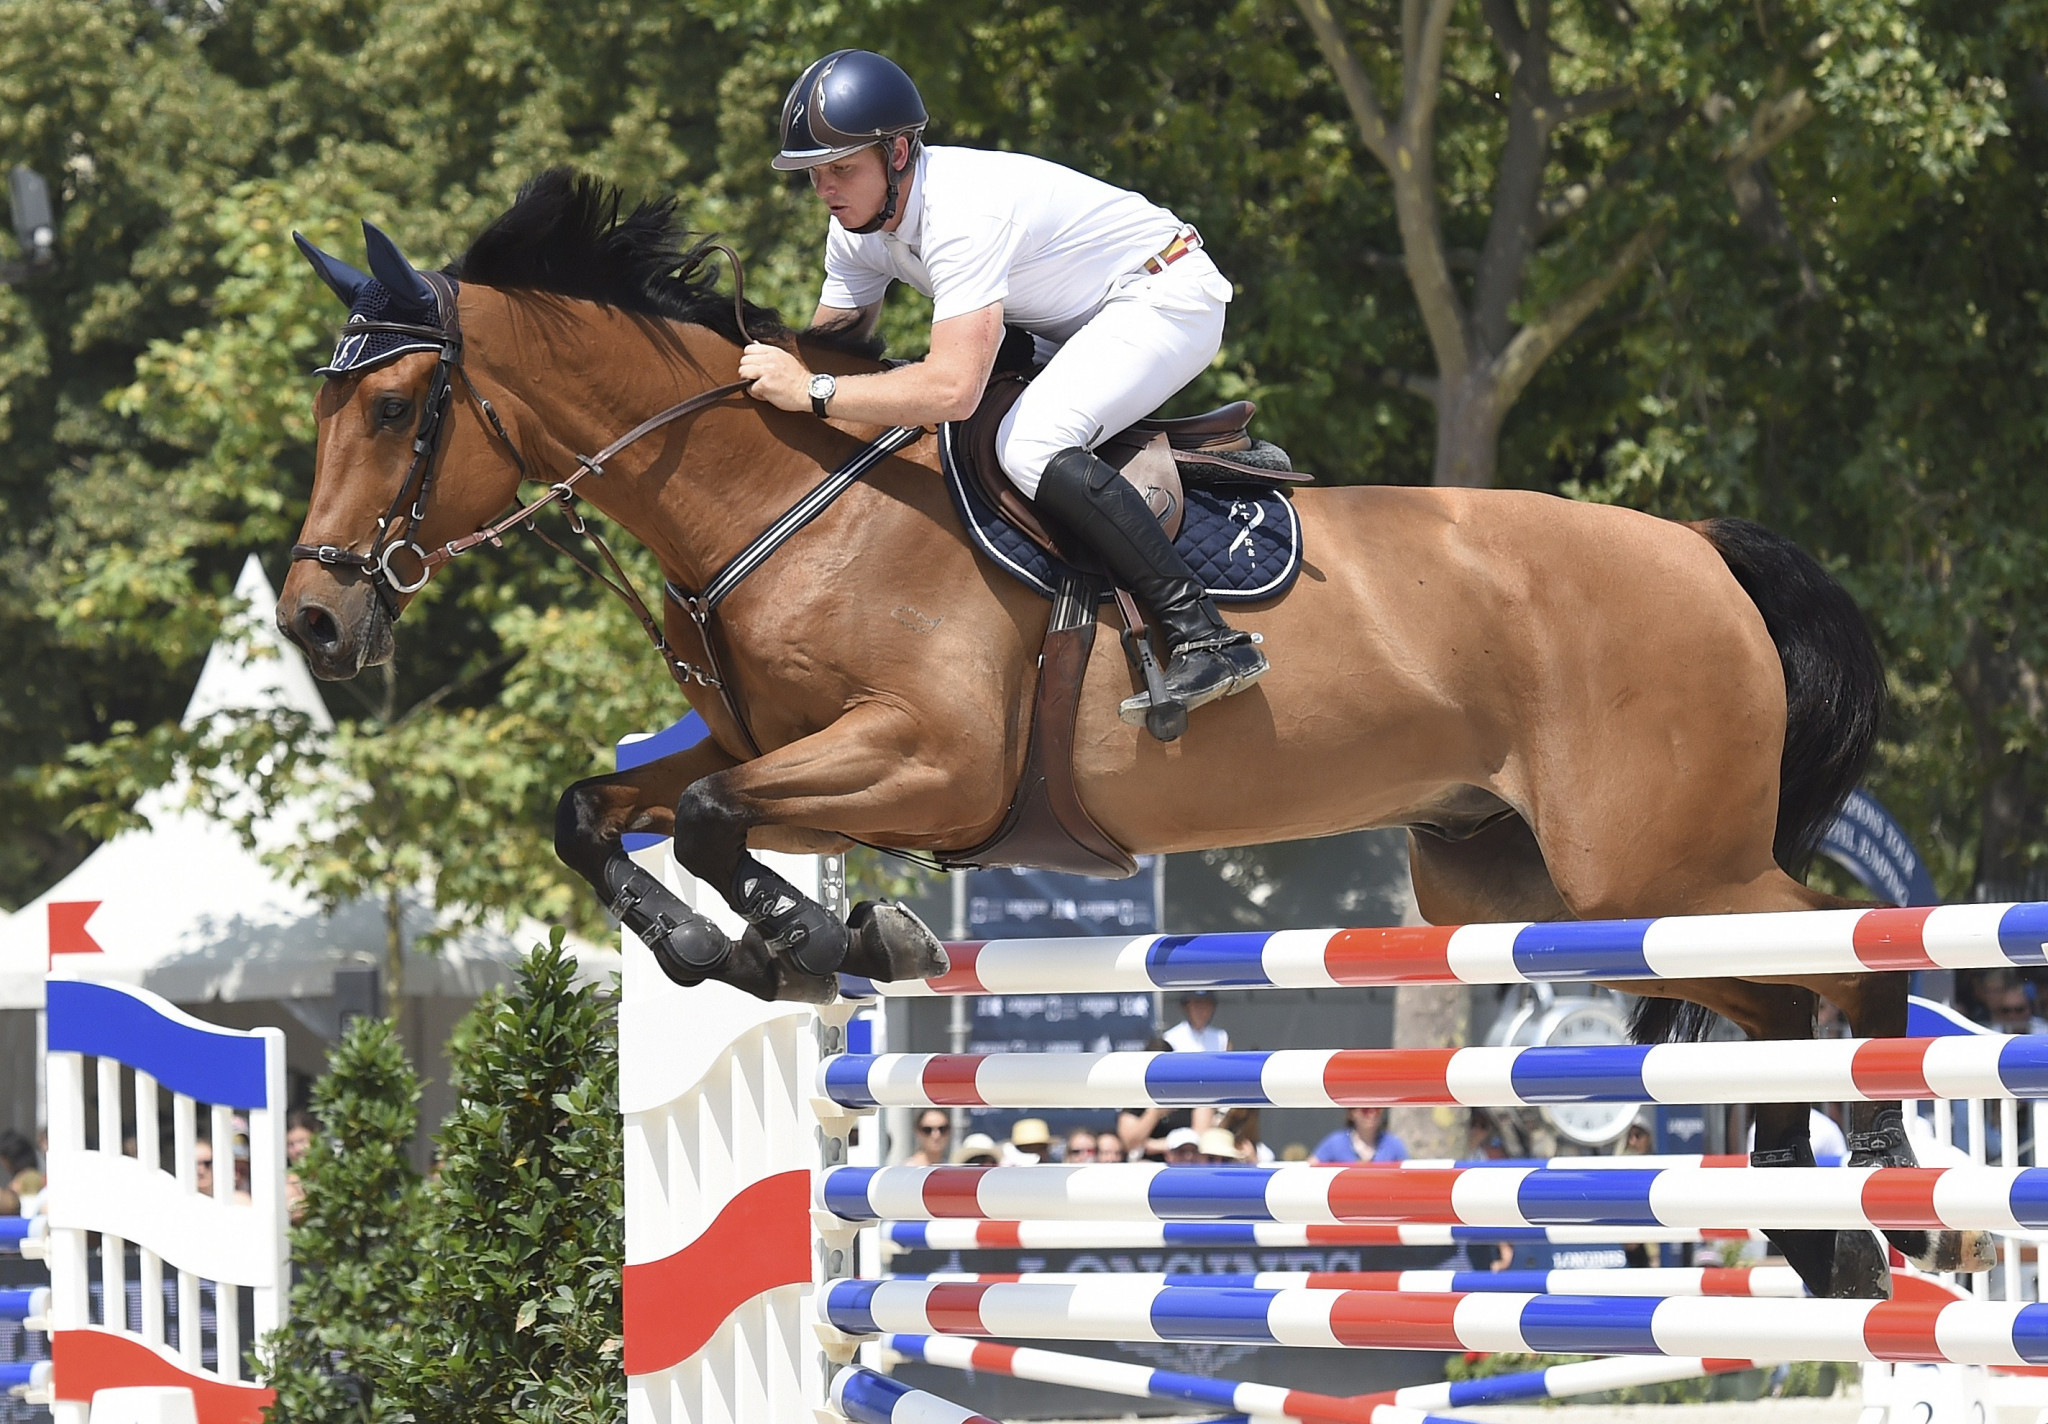 Tokyo 2020 showjumper to miss Olympics after testing positive for cocaine